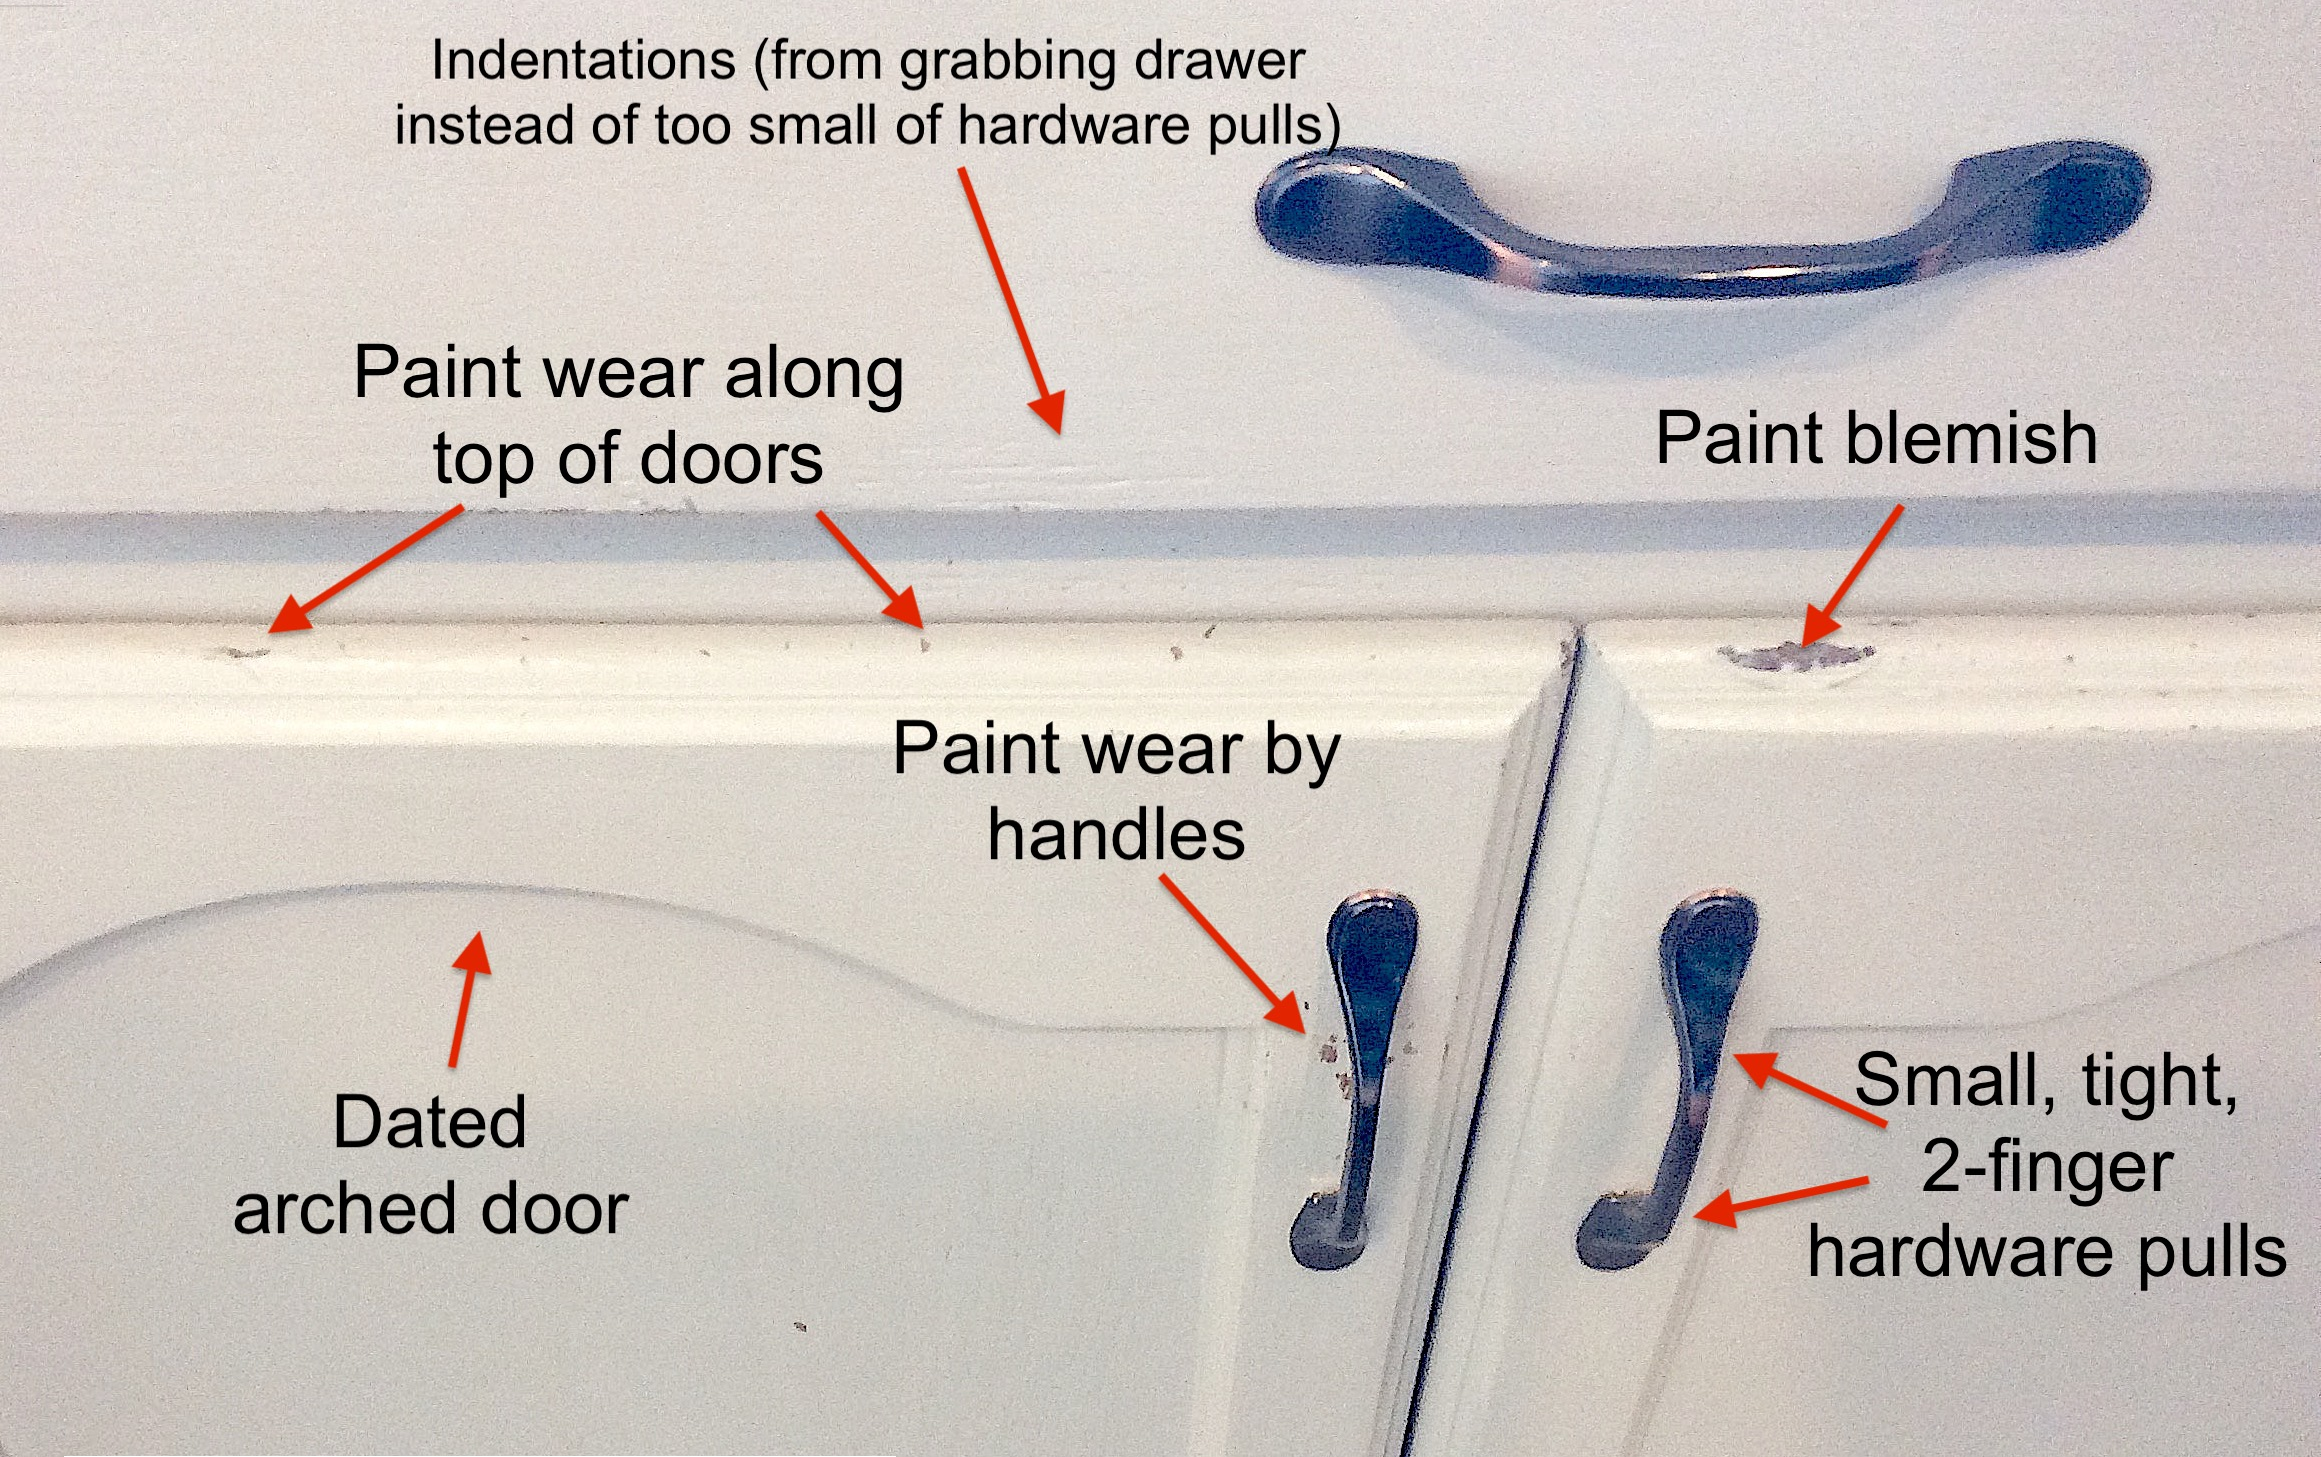 """There are a myriad of typical painted doors and drawer issues: No matter how much paint you apply, your dated style door will still be a dated door. You can also see indentations that were """"cut"""" into the drawer over time as people would grab the drawer by the base rather than by the pull because typically the pulls are too narrow, too flat and too uncomfortable for fingers to to go through; you can see paint wear along the tops of the doors where there is likely a lot of hand interaction due to the small handles, and also the common wearing of paint in the pulls where fingers, fingernails and hand jewelry collide; and, lastly, paint blemish and discoloration due to the nature of paint application."""